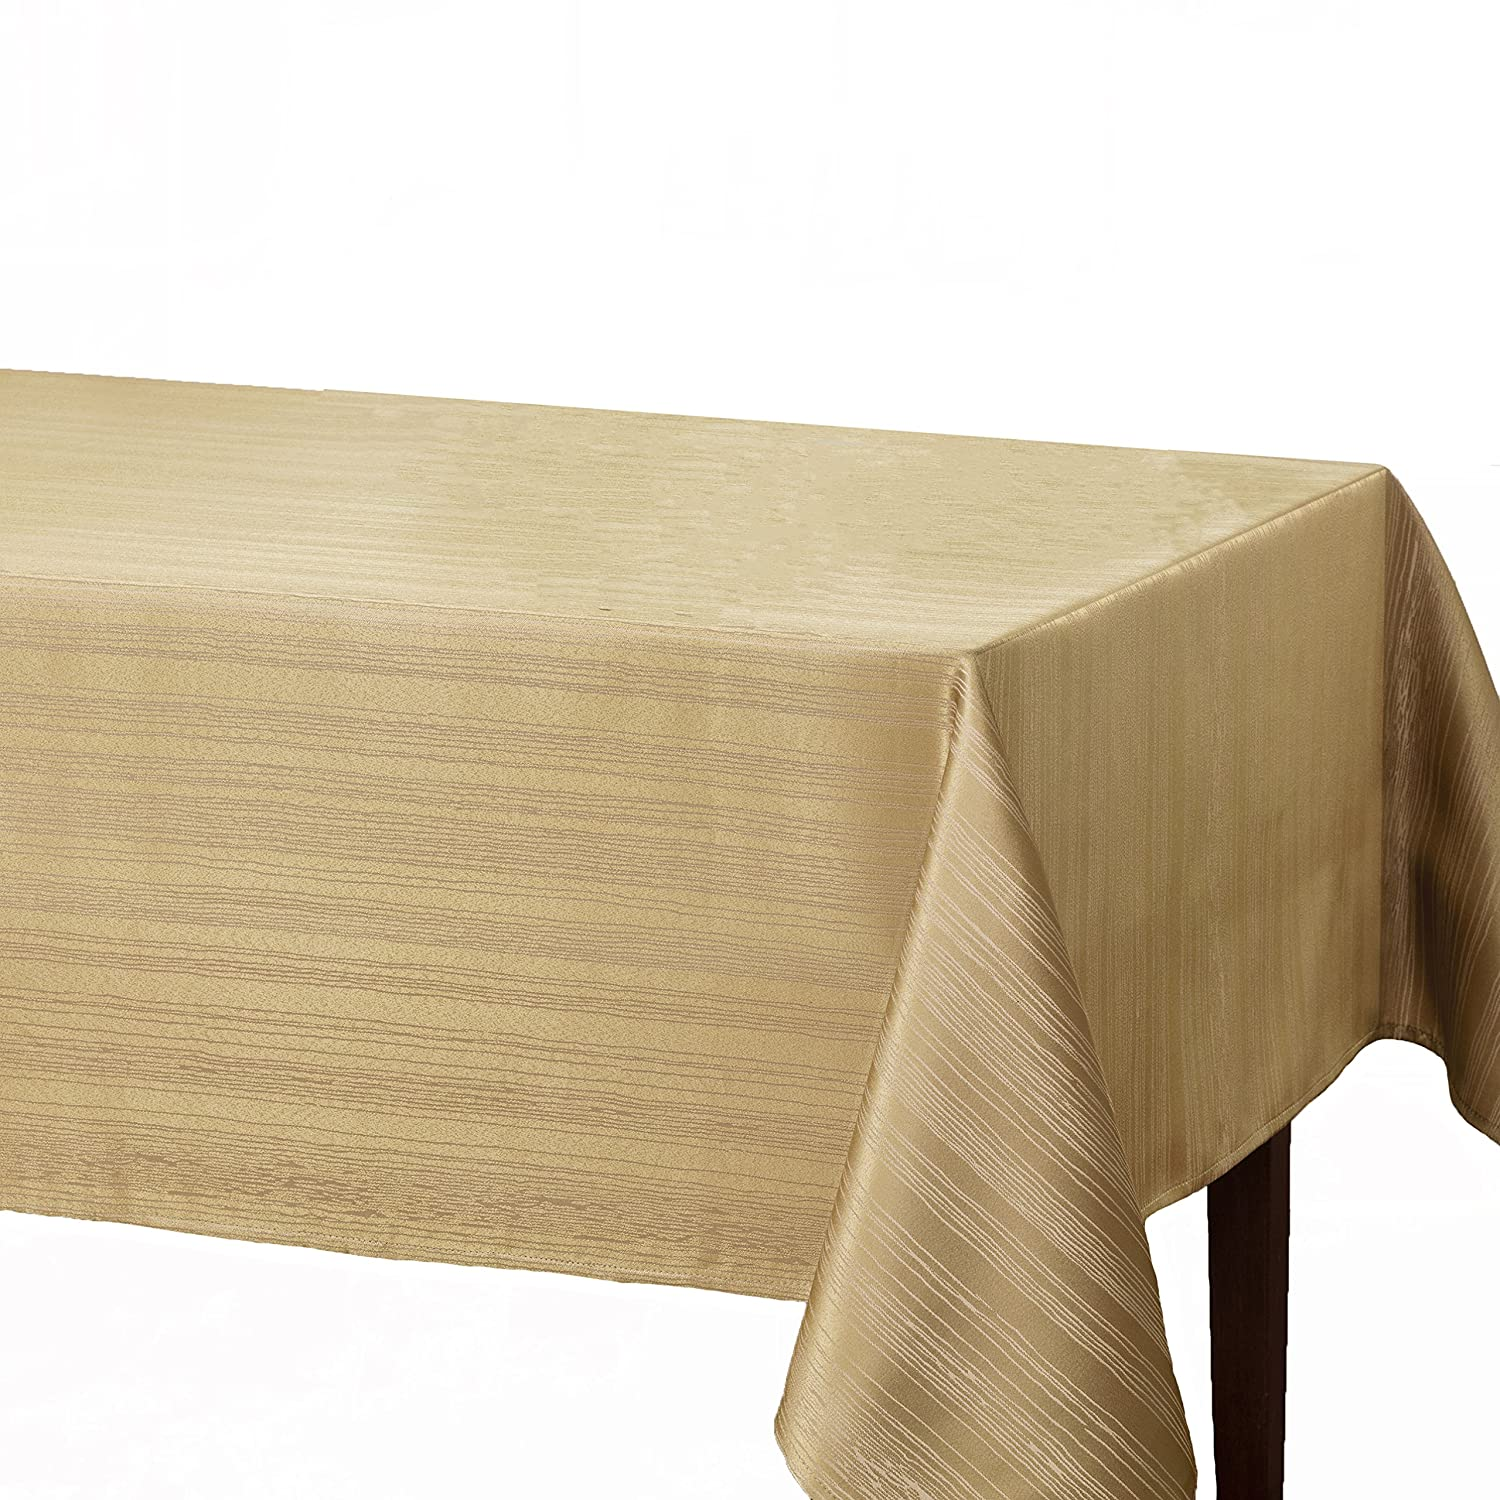 "Benson Mills Flow ""Spillproof"" Fabric Tablecloth, 60X104 Inch, Ivory/Ecru"